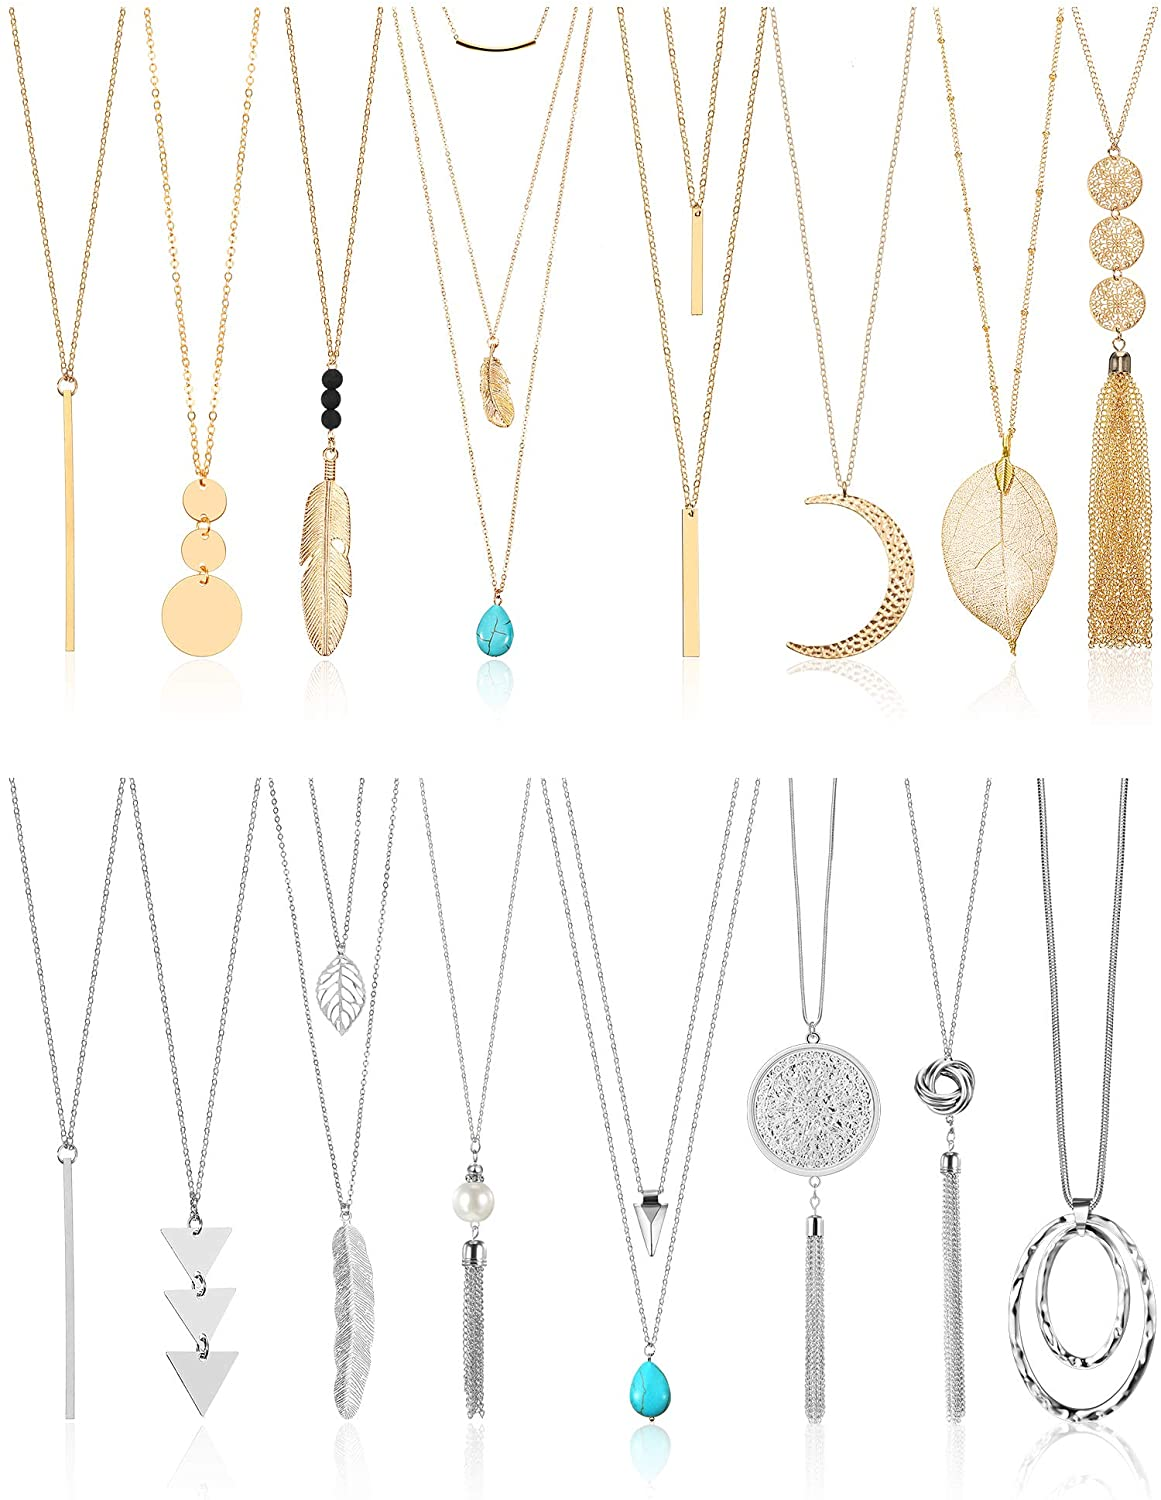 16 Pieces Long Necklaces for Women Tassel Sweater Necklaces Bar Layer Three Triangle Knot Disk Pendant Necklace Set, Gold and Silver